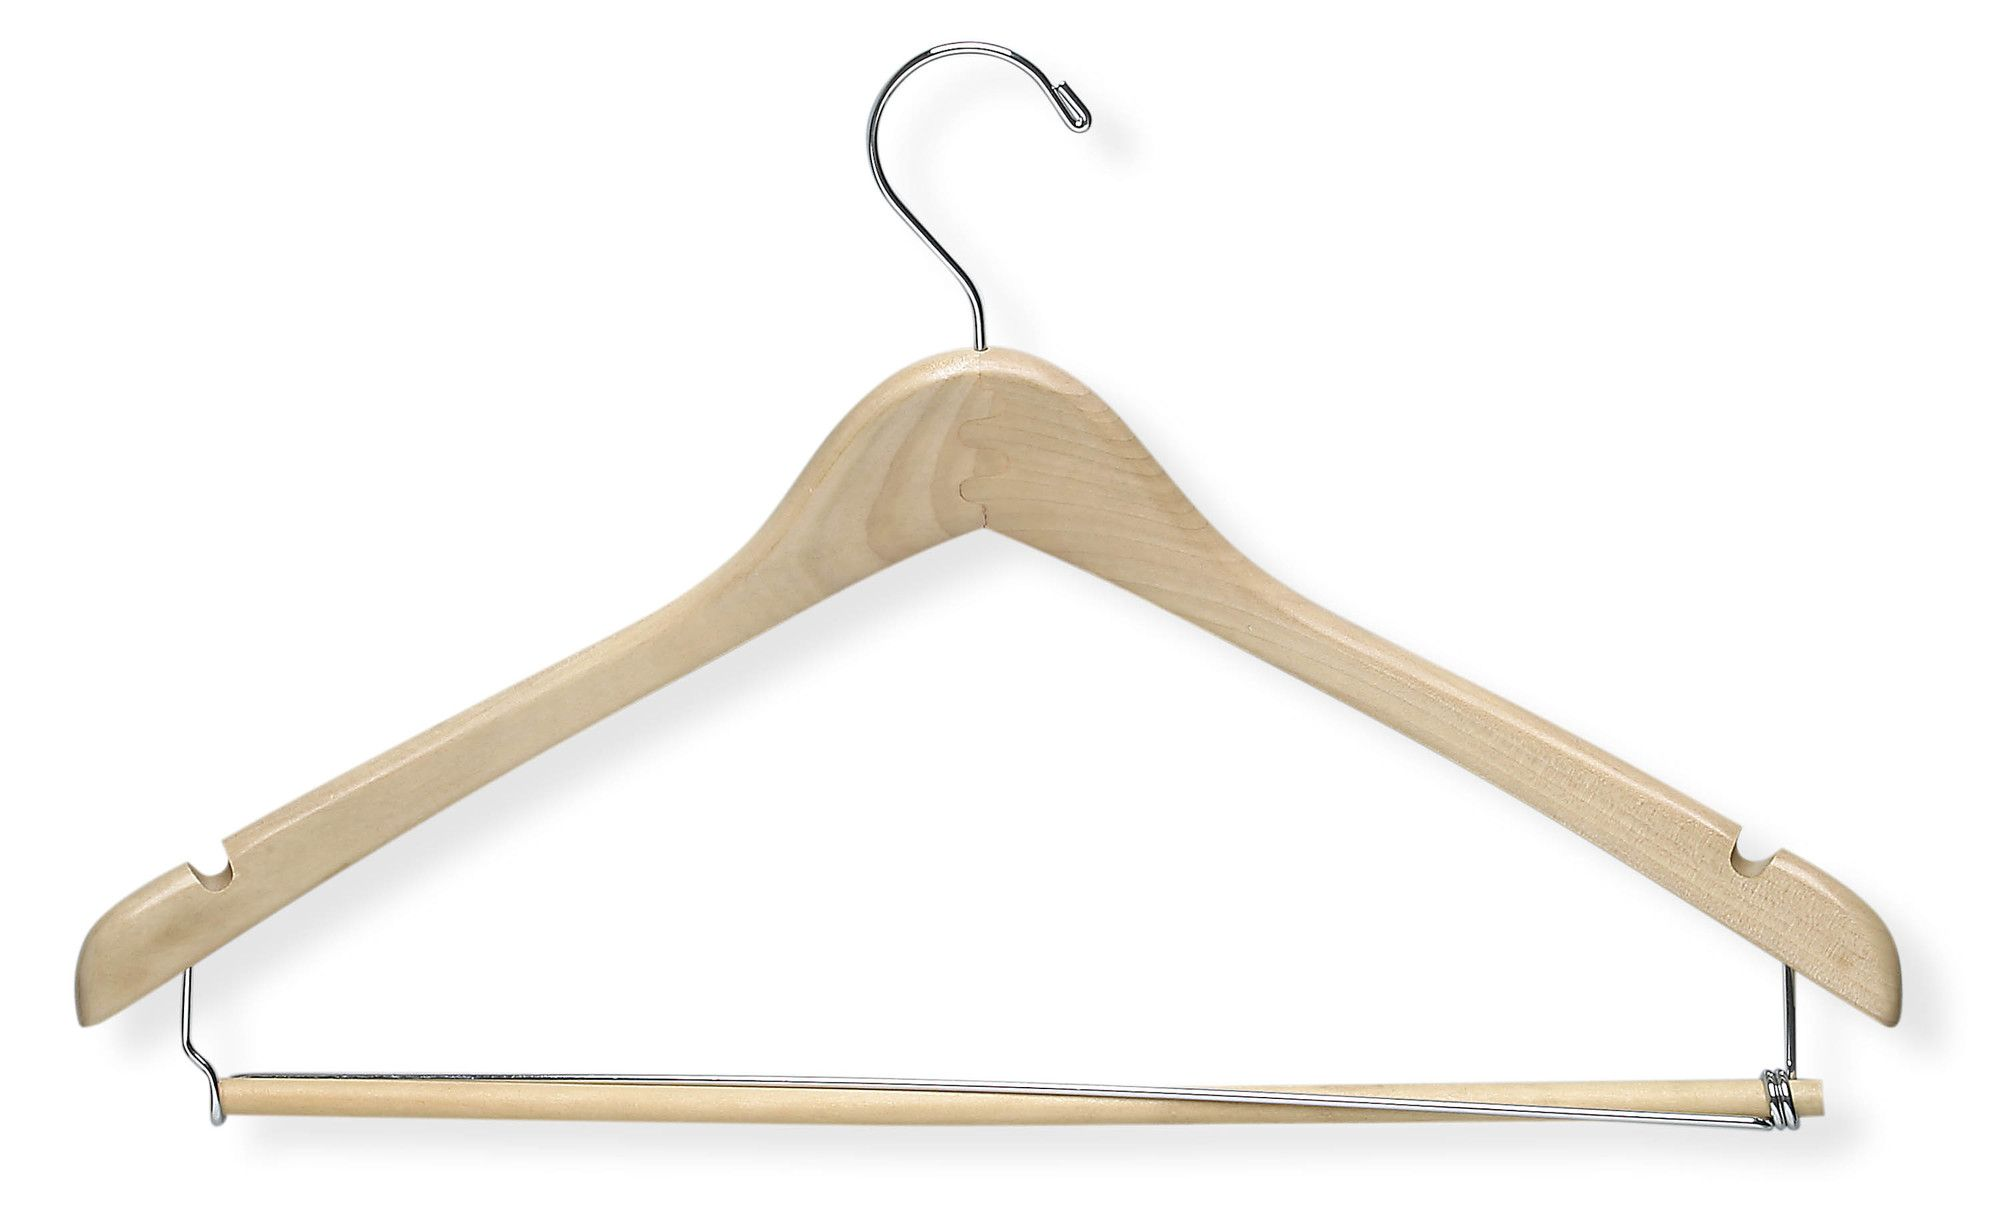 Contoured Suit Hanger with Locking Bar (Set of 2)